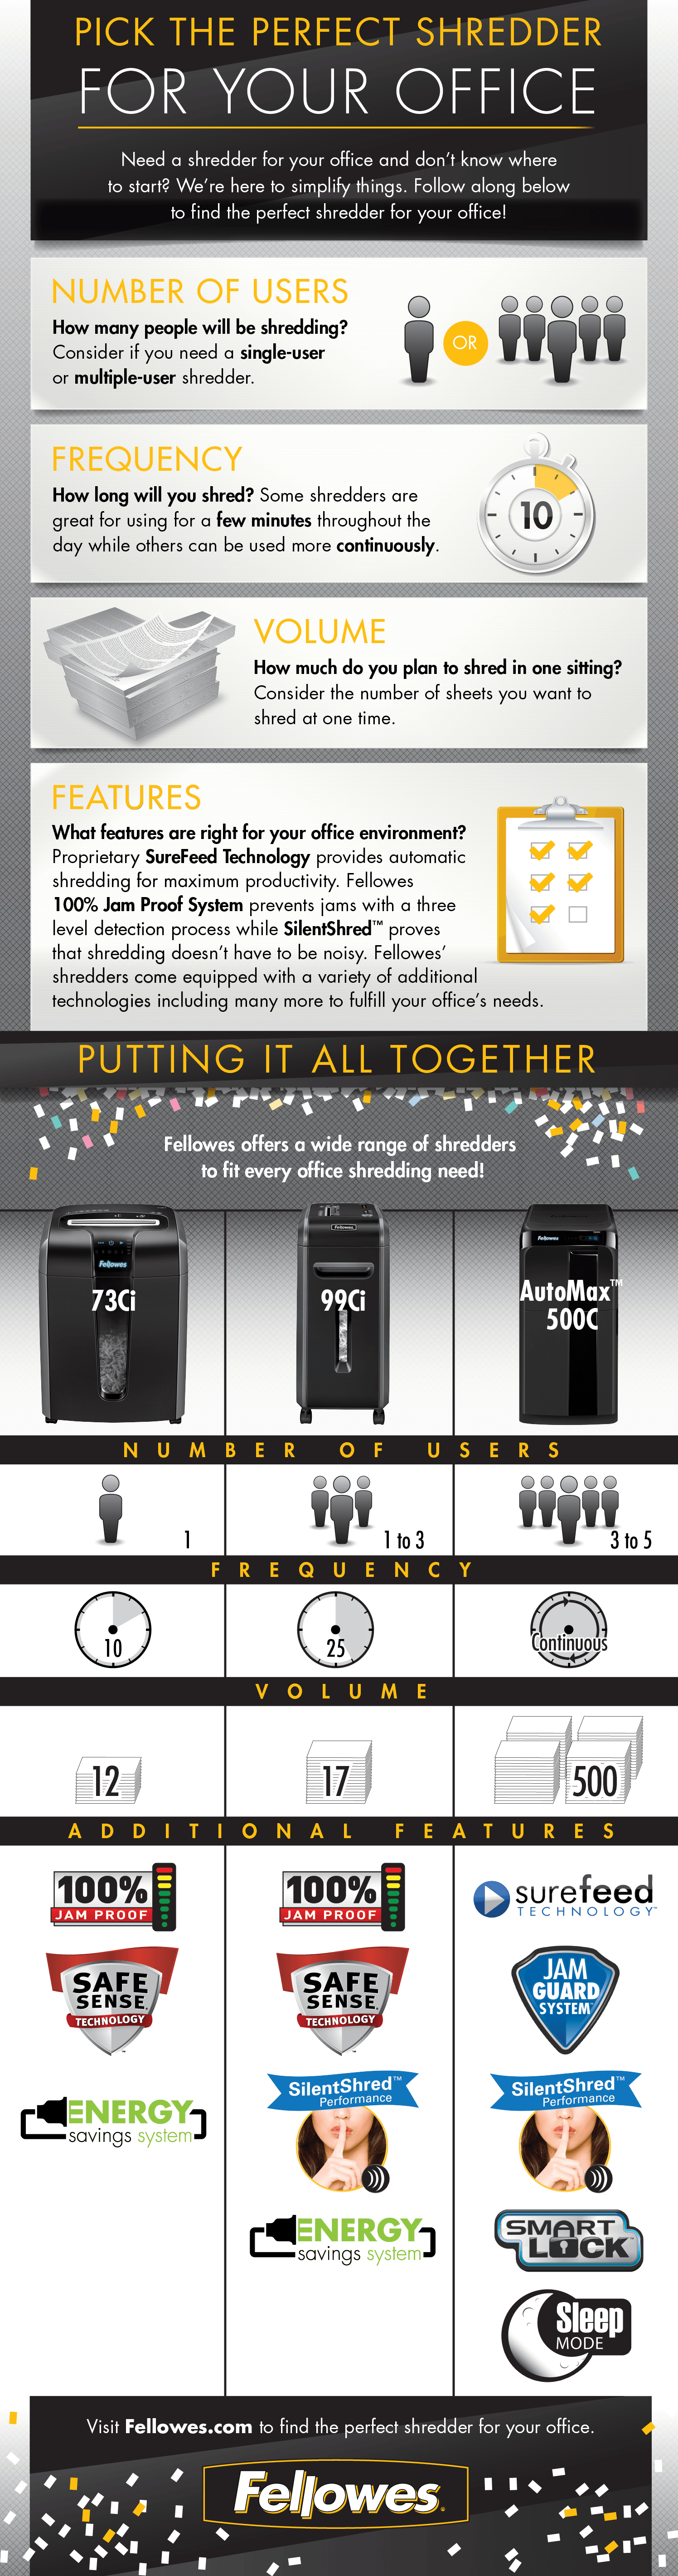 dtd fellowes office 2 infographic image